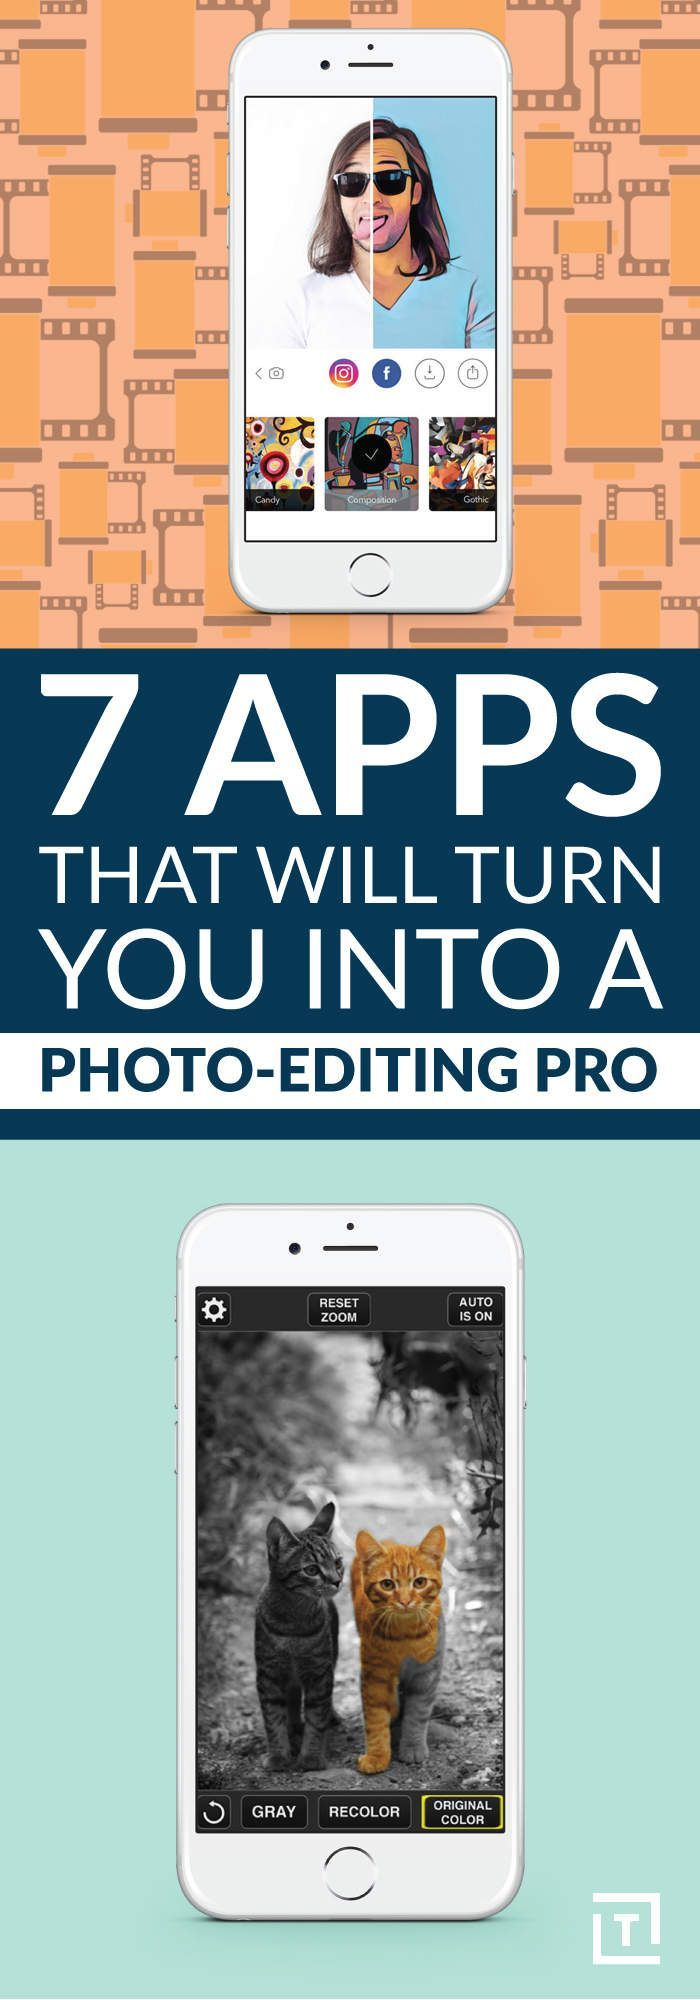 Photography Tips | Apps That Will Turn You Into a Photo-Editing Pro